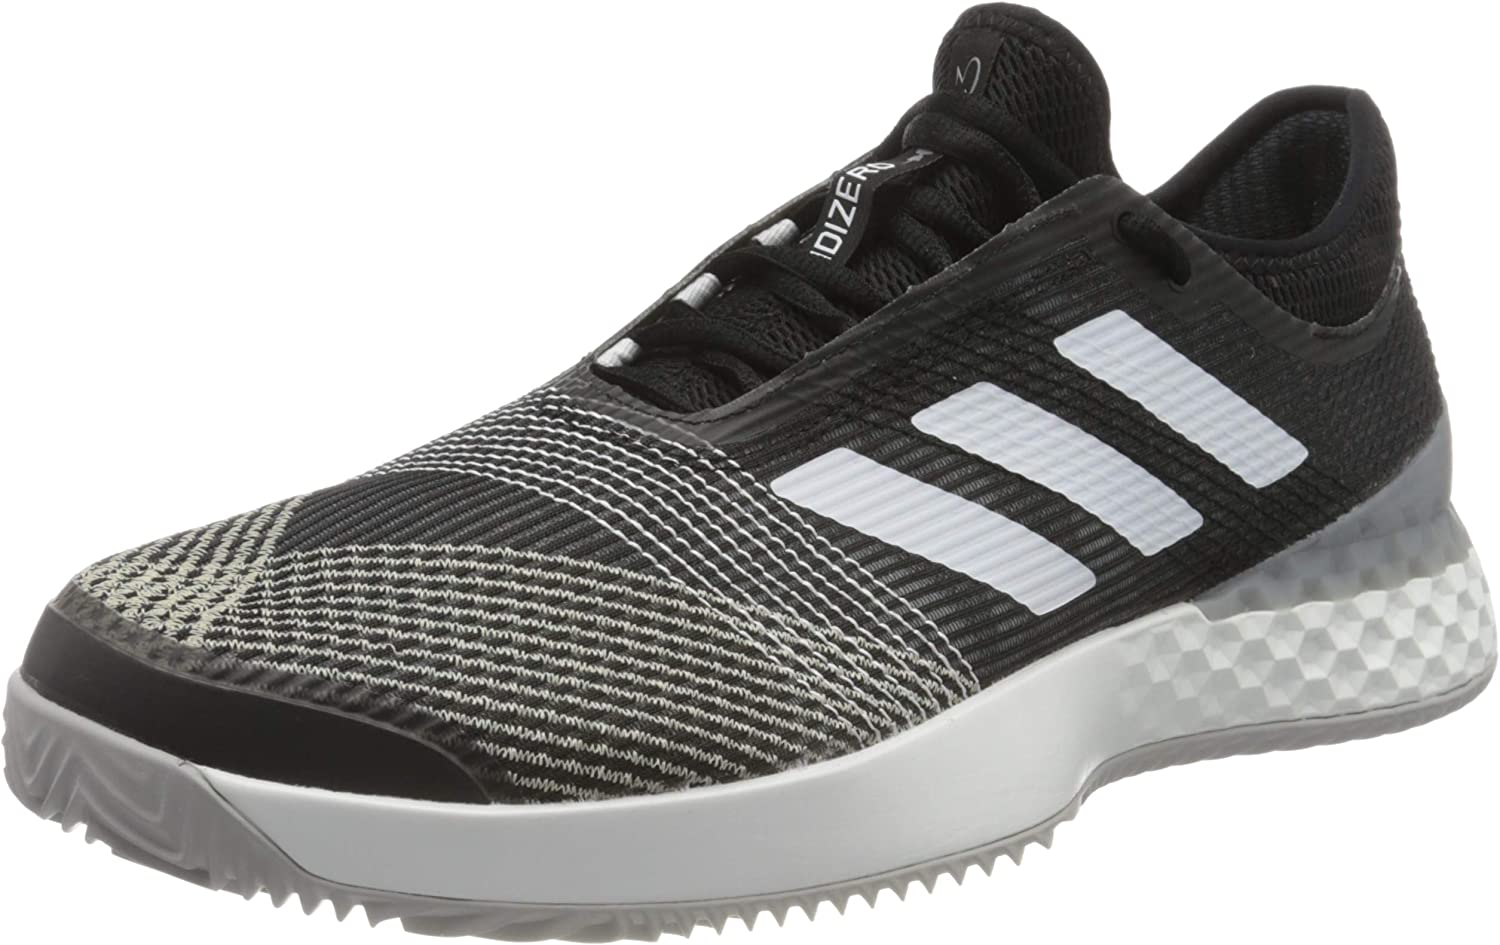 adidas Pro Adversary Low 2019 Adizero Ubersonic 3, Adultos Unisex, Multicolor, 38 2/3 EU